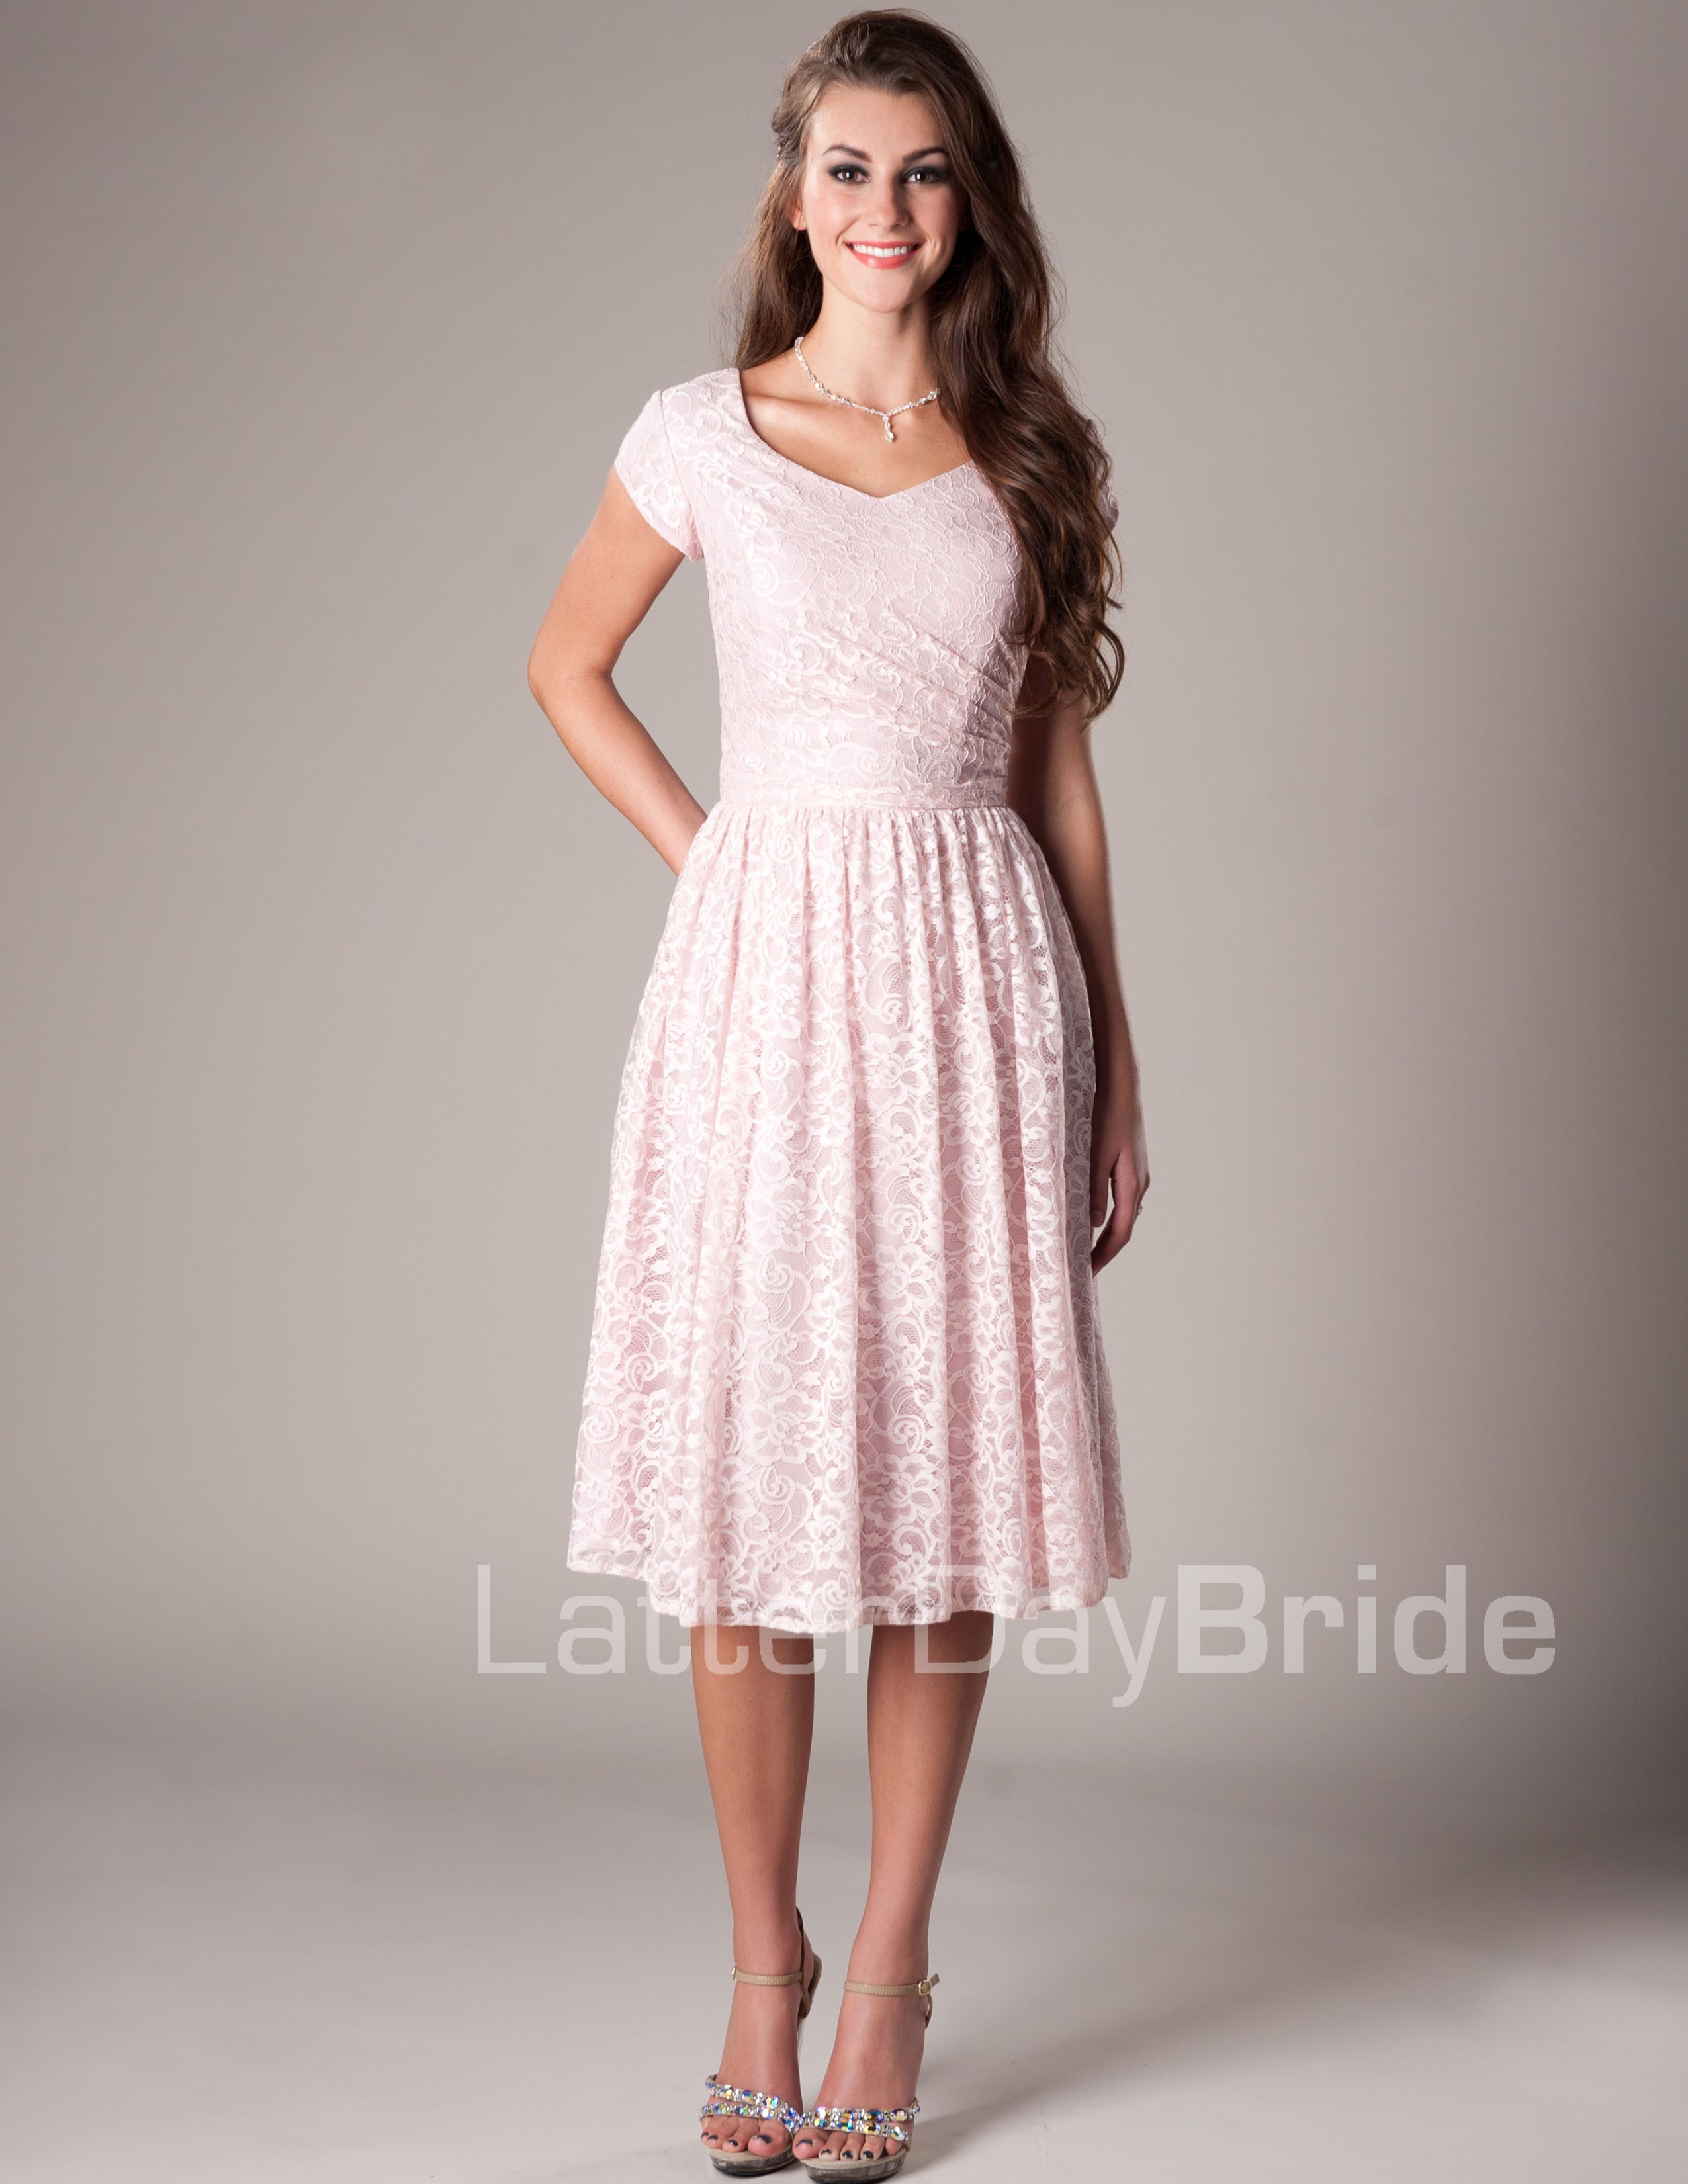 Modest dress websites - Darby Modest Mormon Lds Bridesmaid Dress The Pomegranate Or Iron Would Be Cute And Go